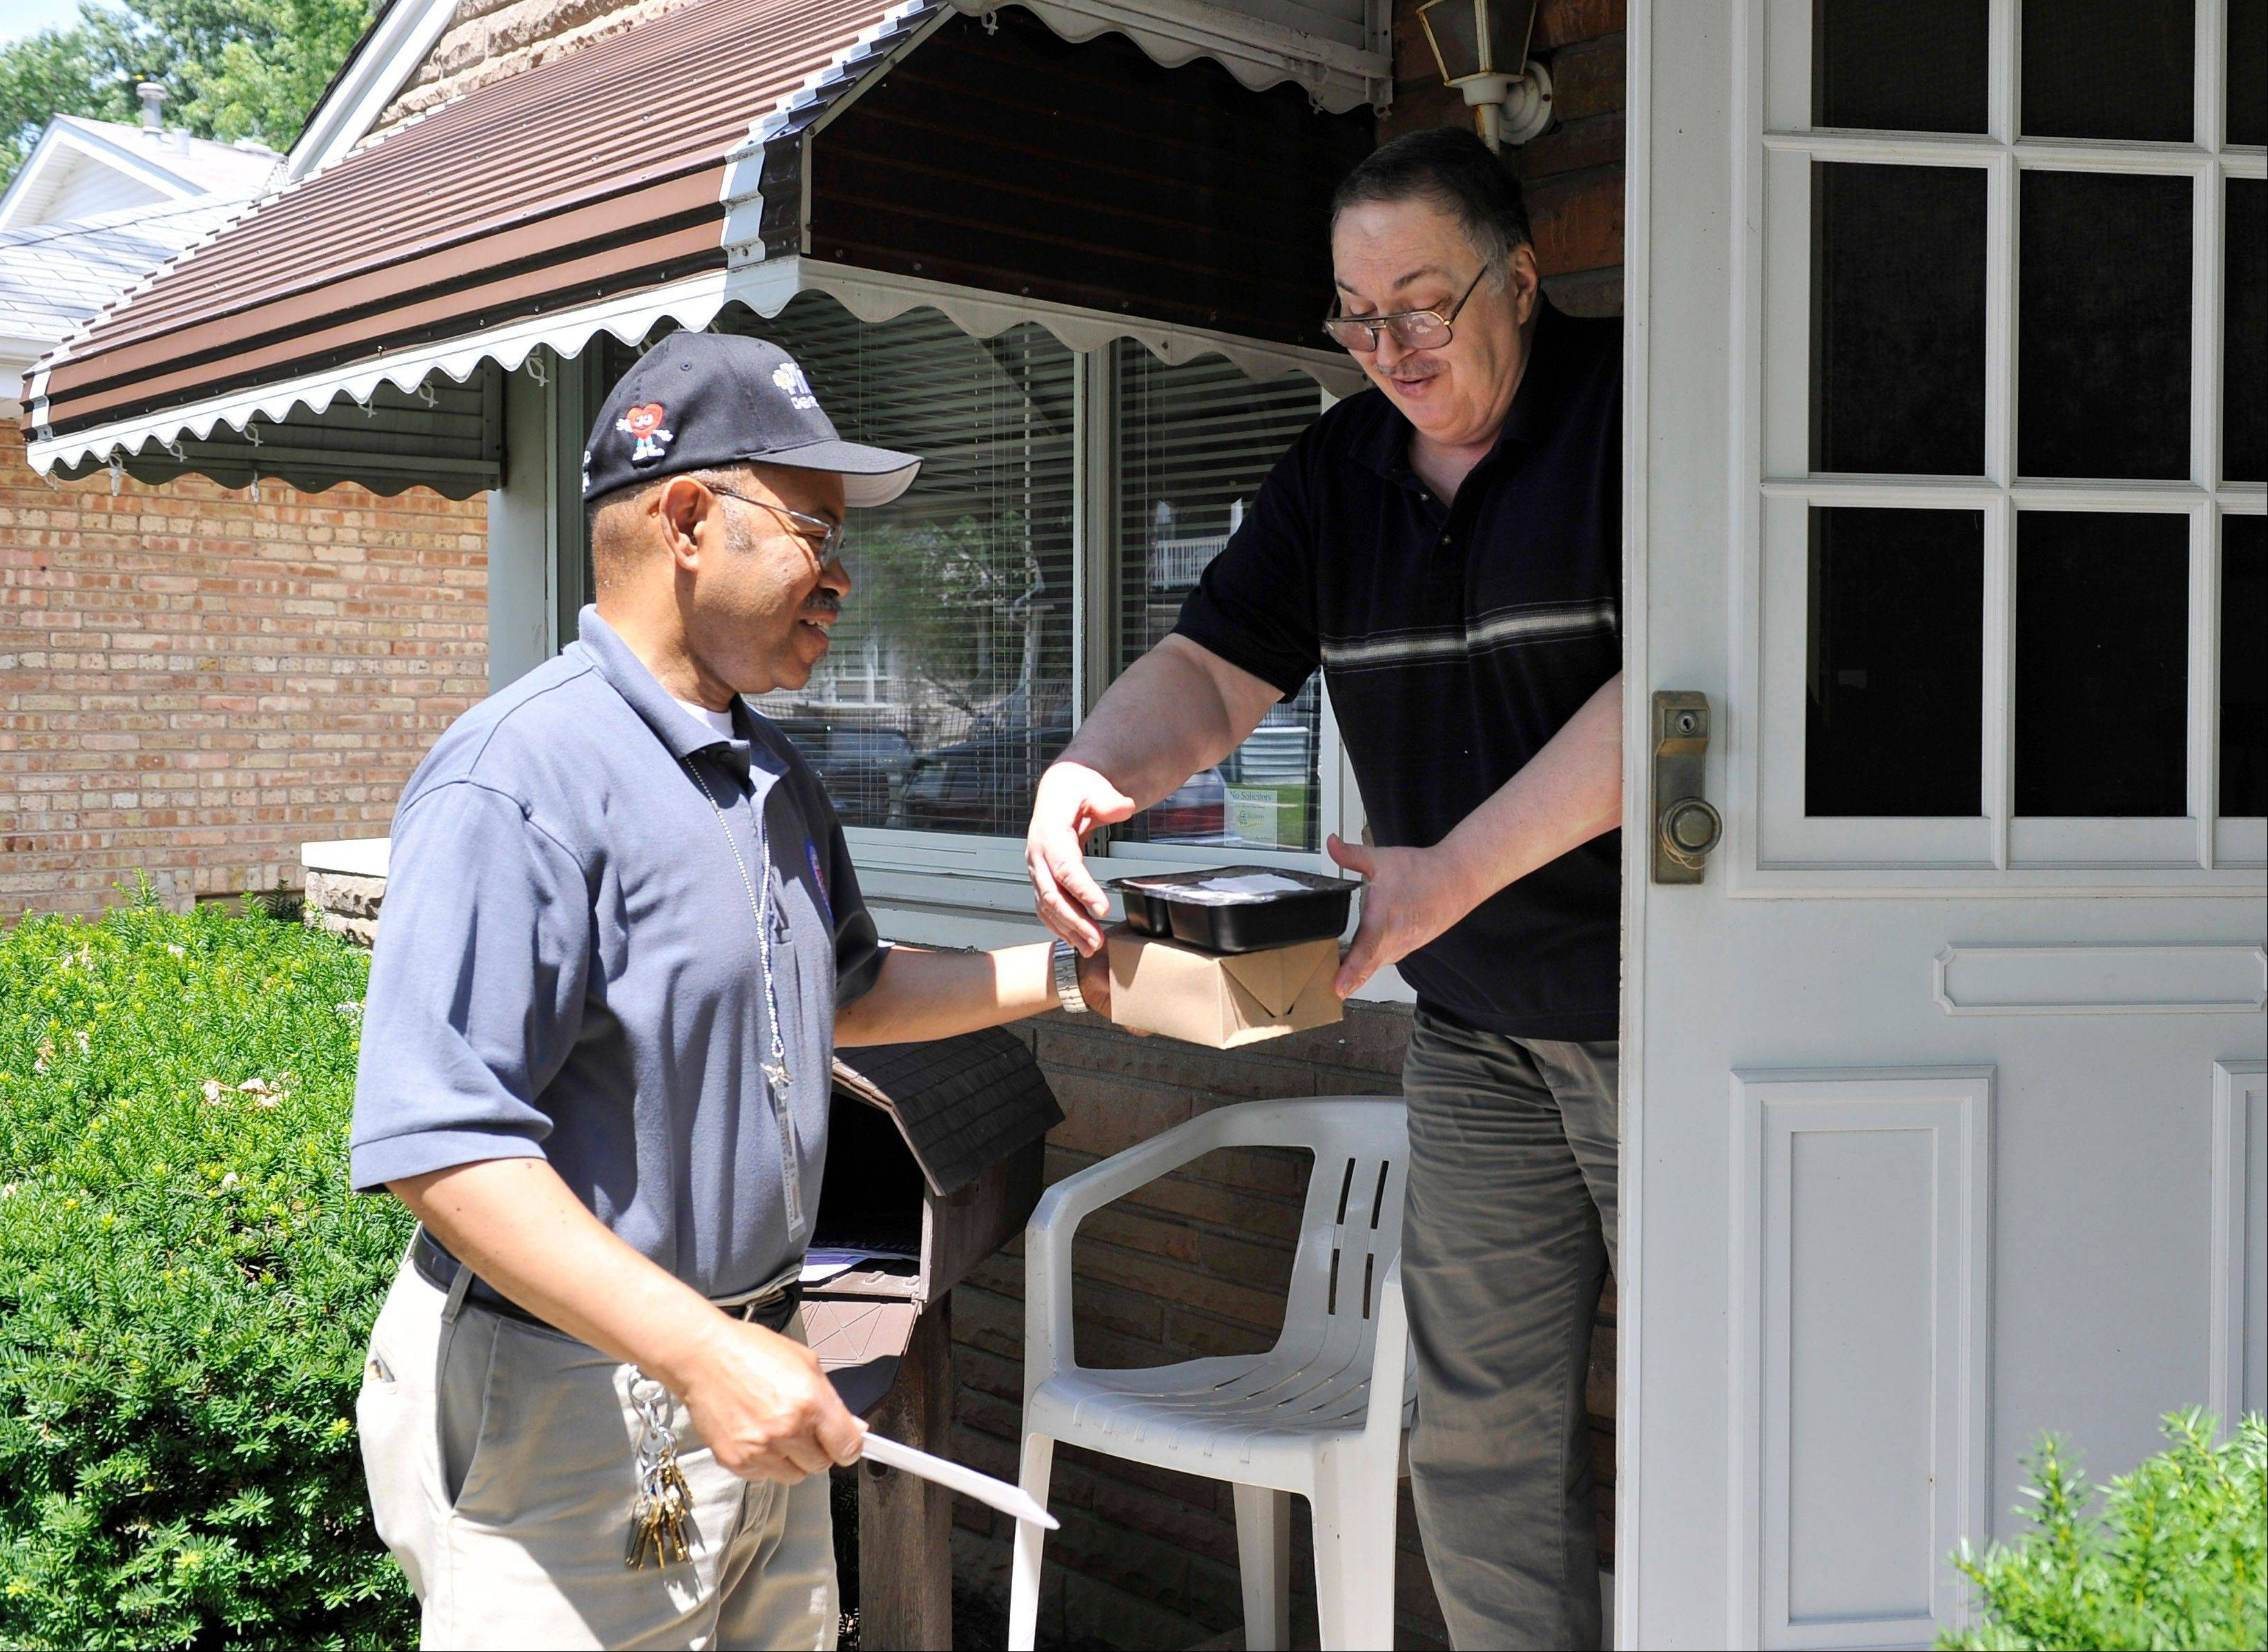 Township of Proviso employee Chester Lamar delivers a meal to Joe Lagen, 67, who suffers from vertigo and cannot drive in Bellwood. Budget cuts to programs that deliver meals to homebound seniors in Illinois may force some frail elderly into nursing homes, a more expensive option for both the individuals and the state, advocates say.